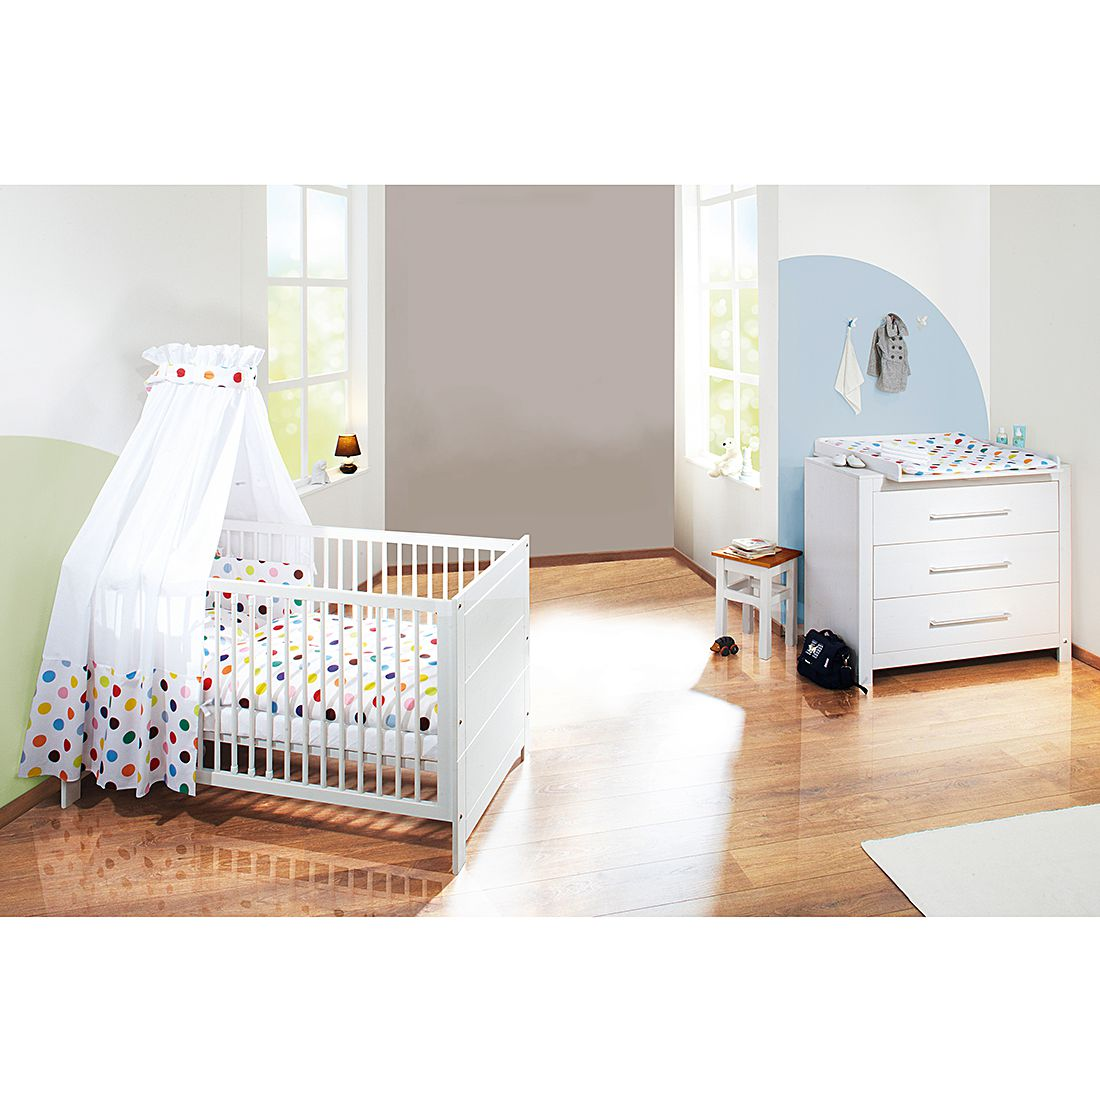 sparset rock star 2 teilig babybett wickelkommode. Black Bedroom Furniture Sets. Home Design Ideas